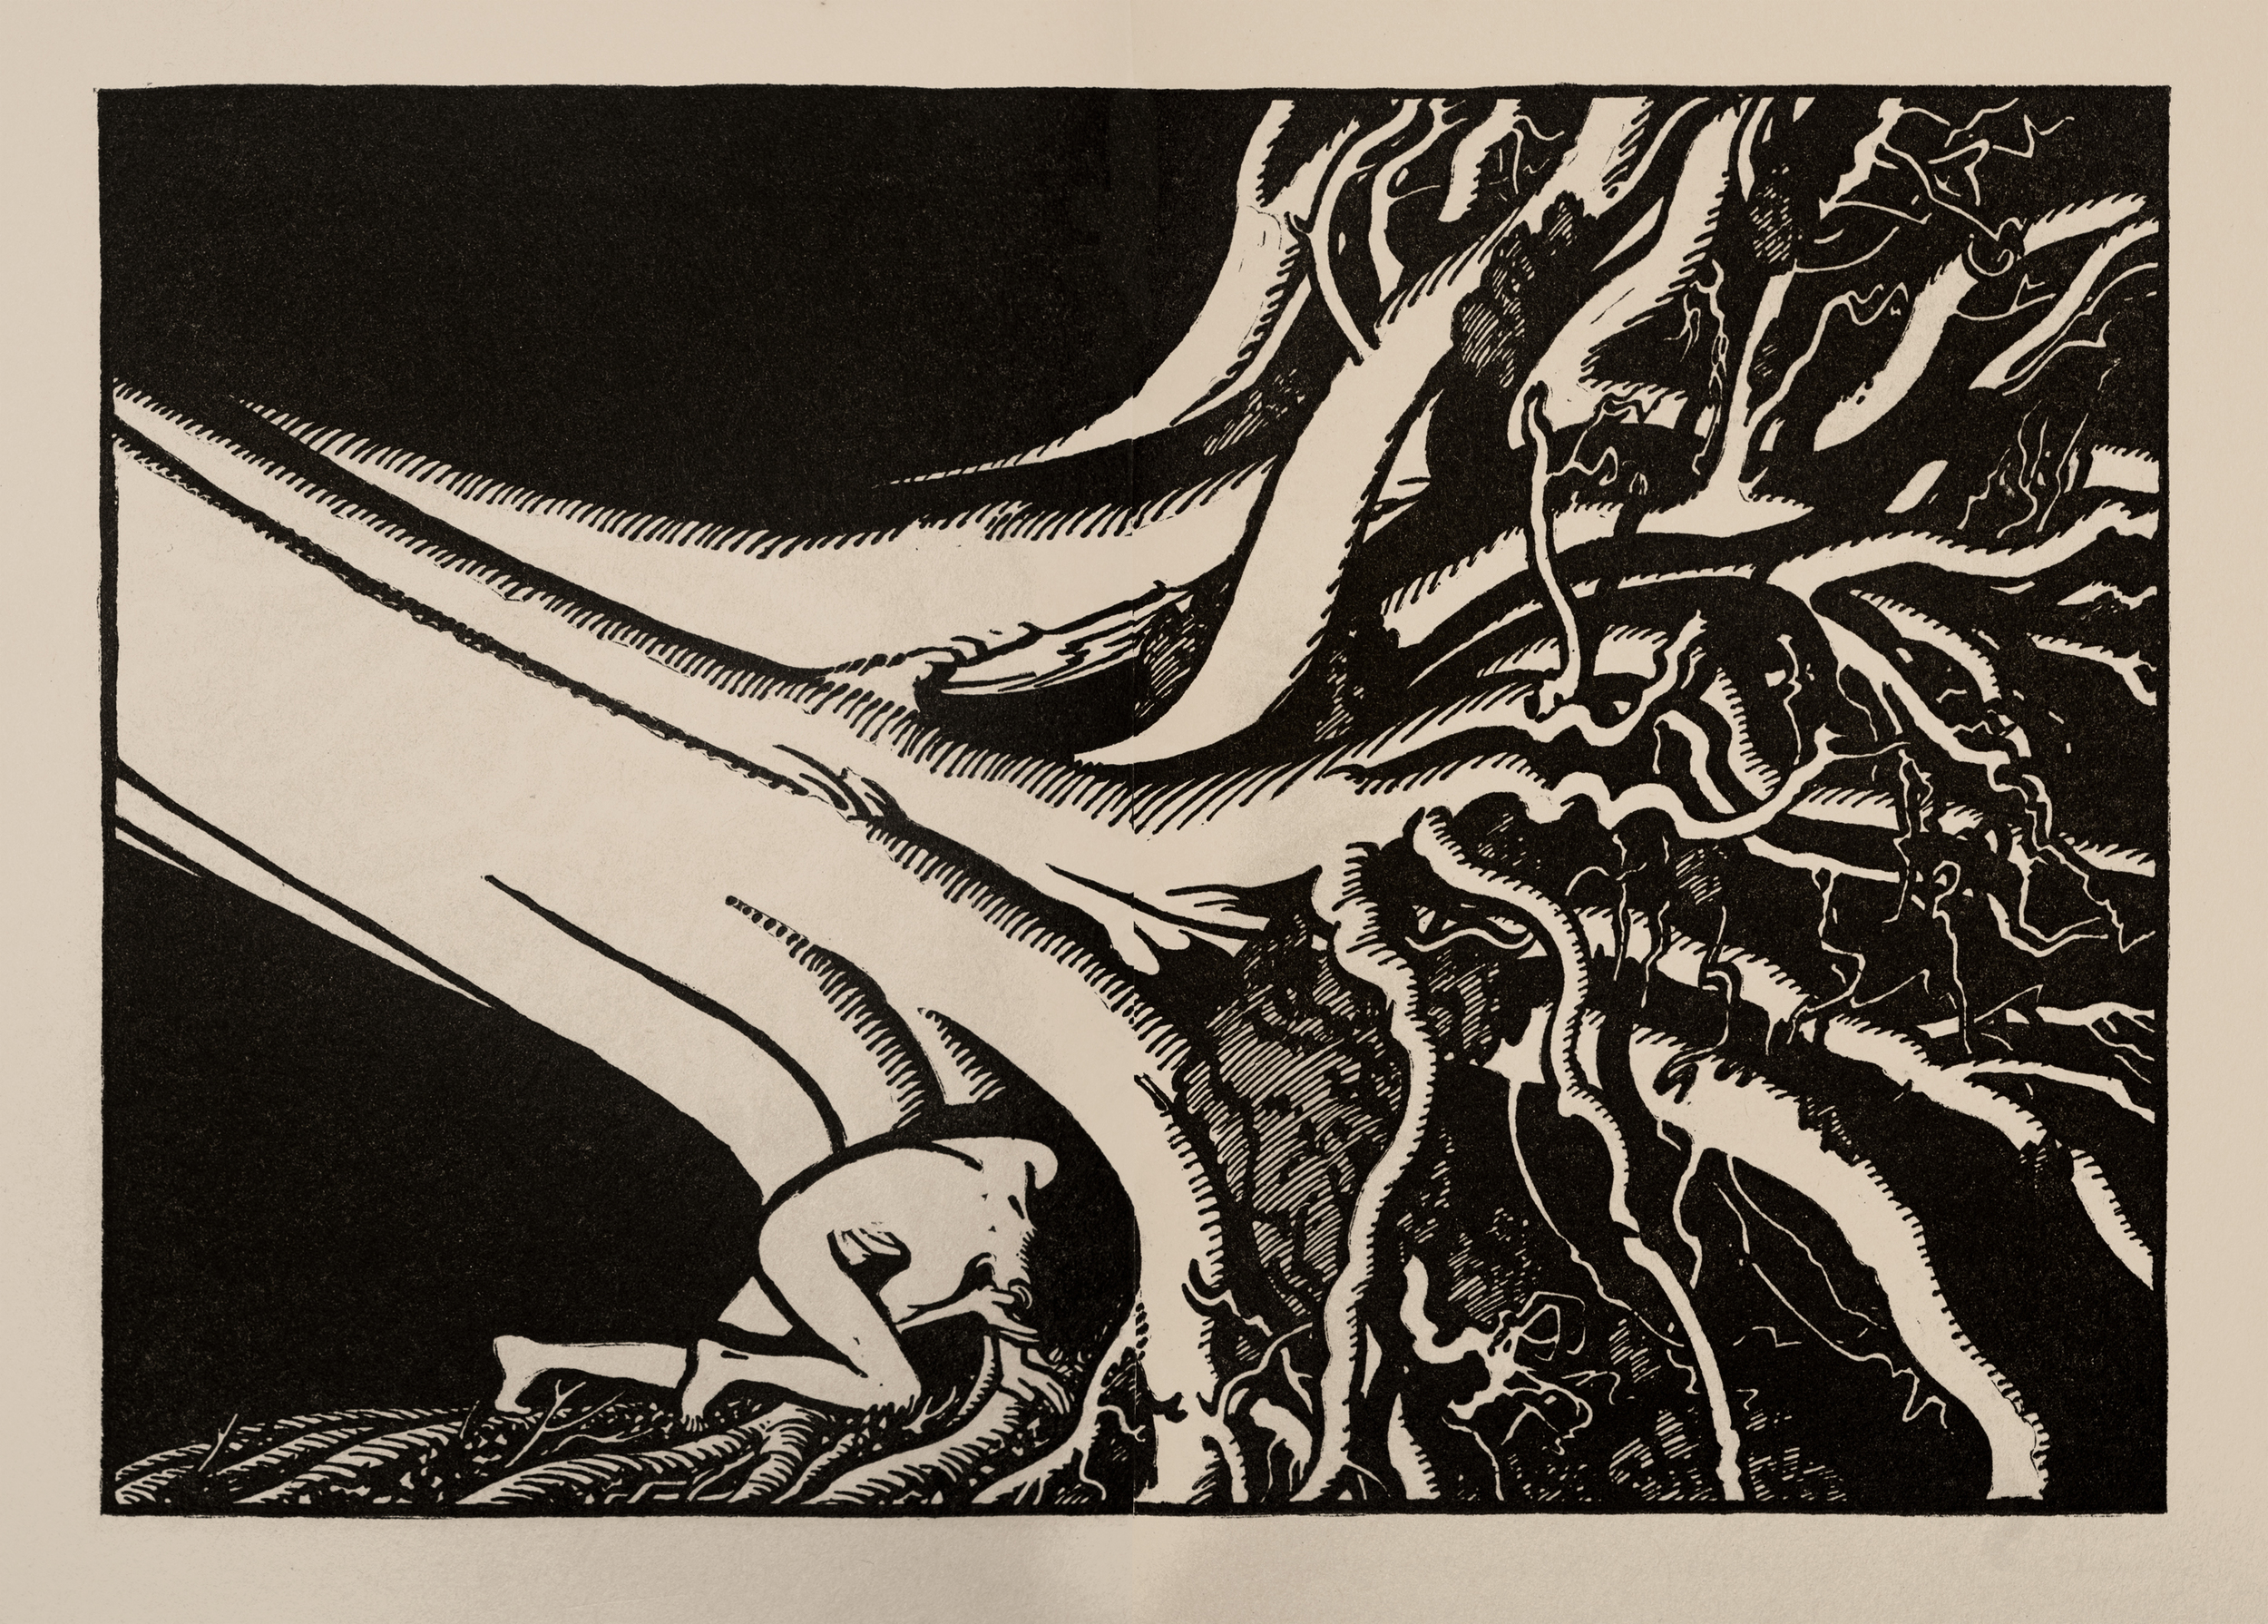 Illustration for Green Mansions by Keith Henderson - c.1930